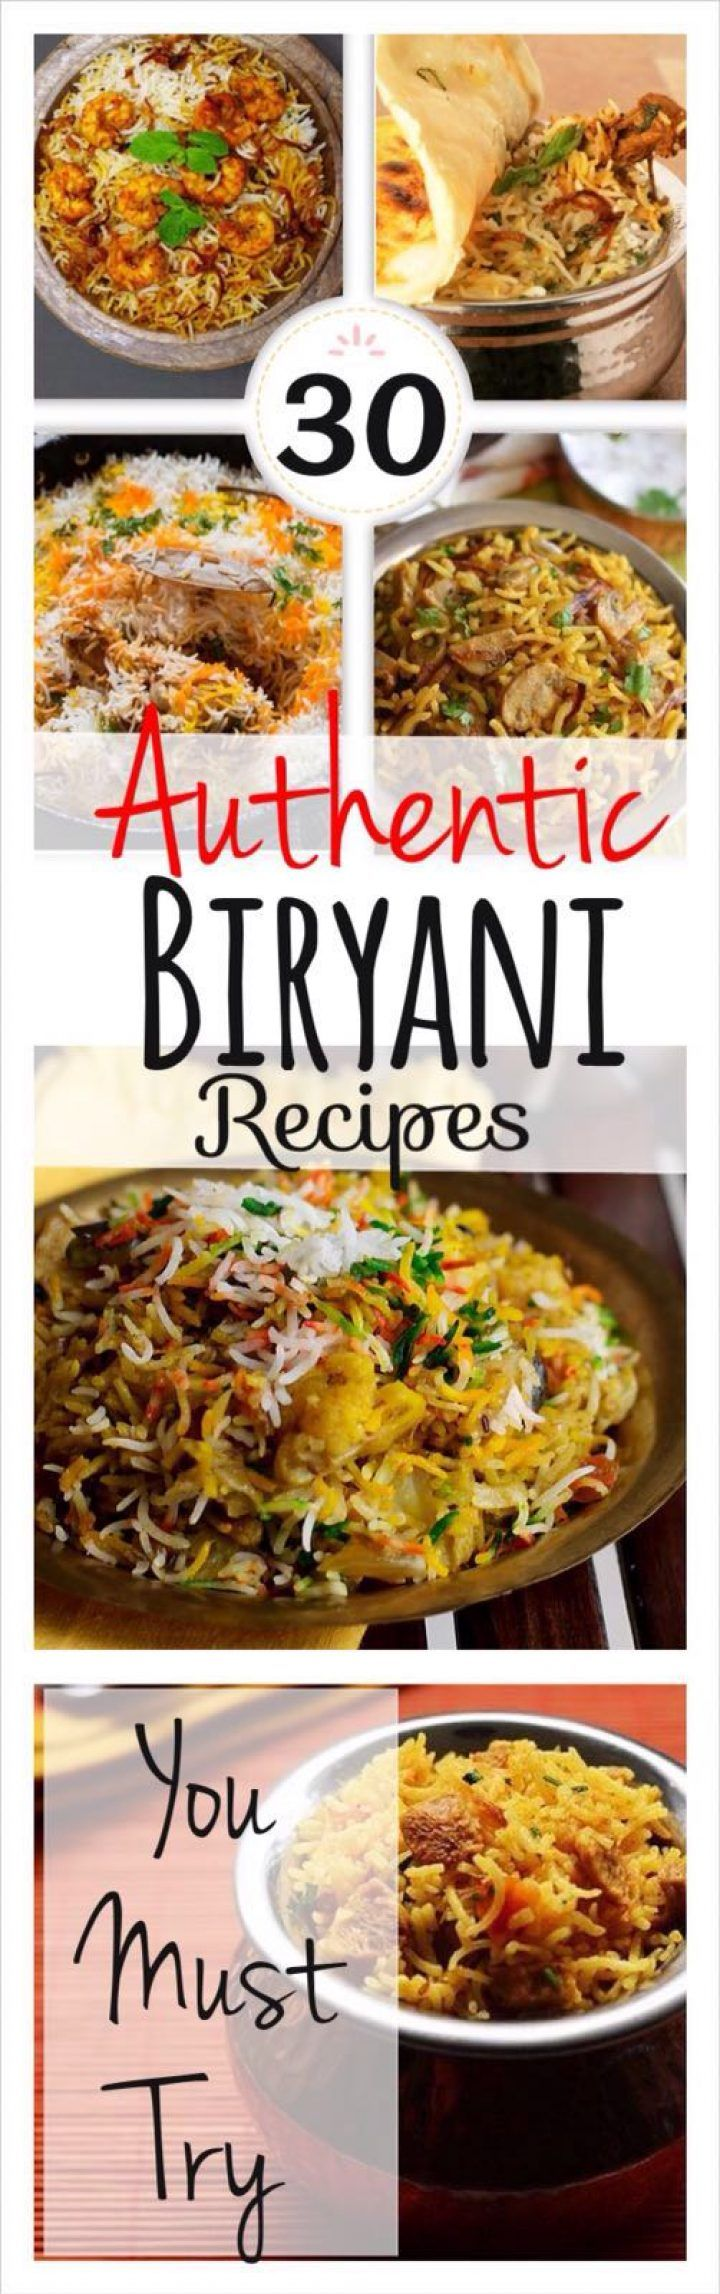 30 Authentic Biryani Recipes- You must try!